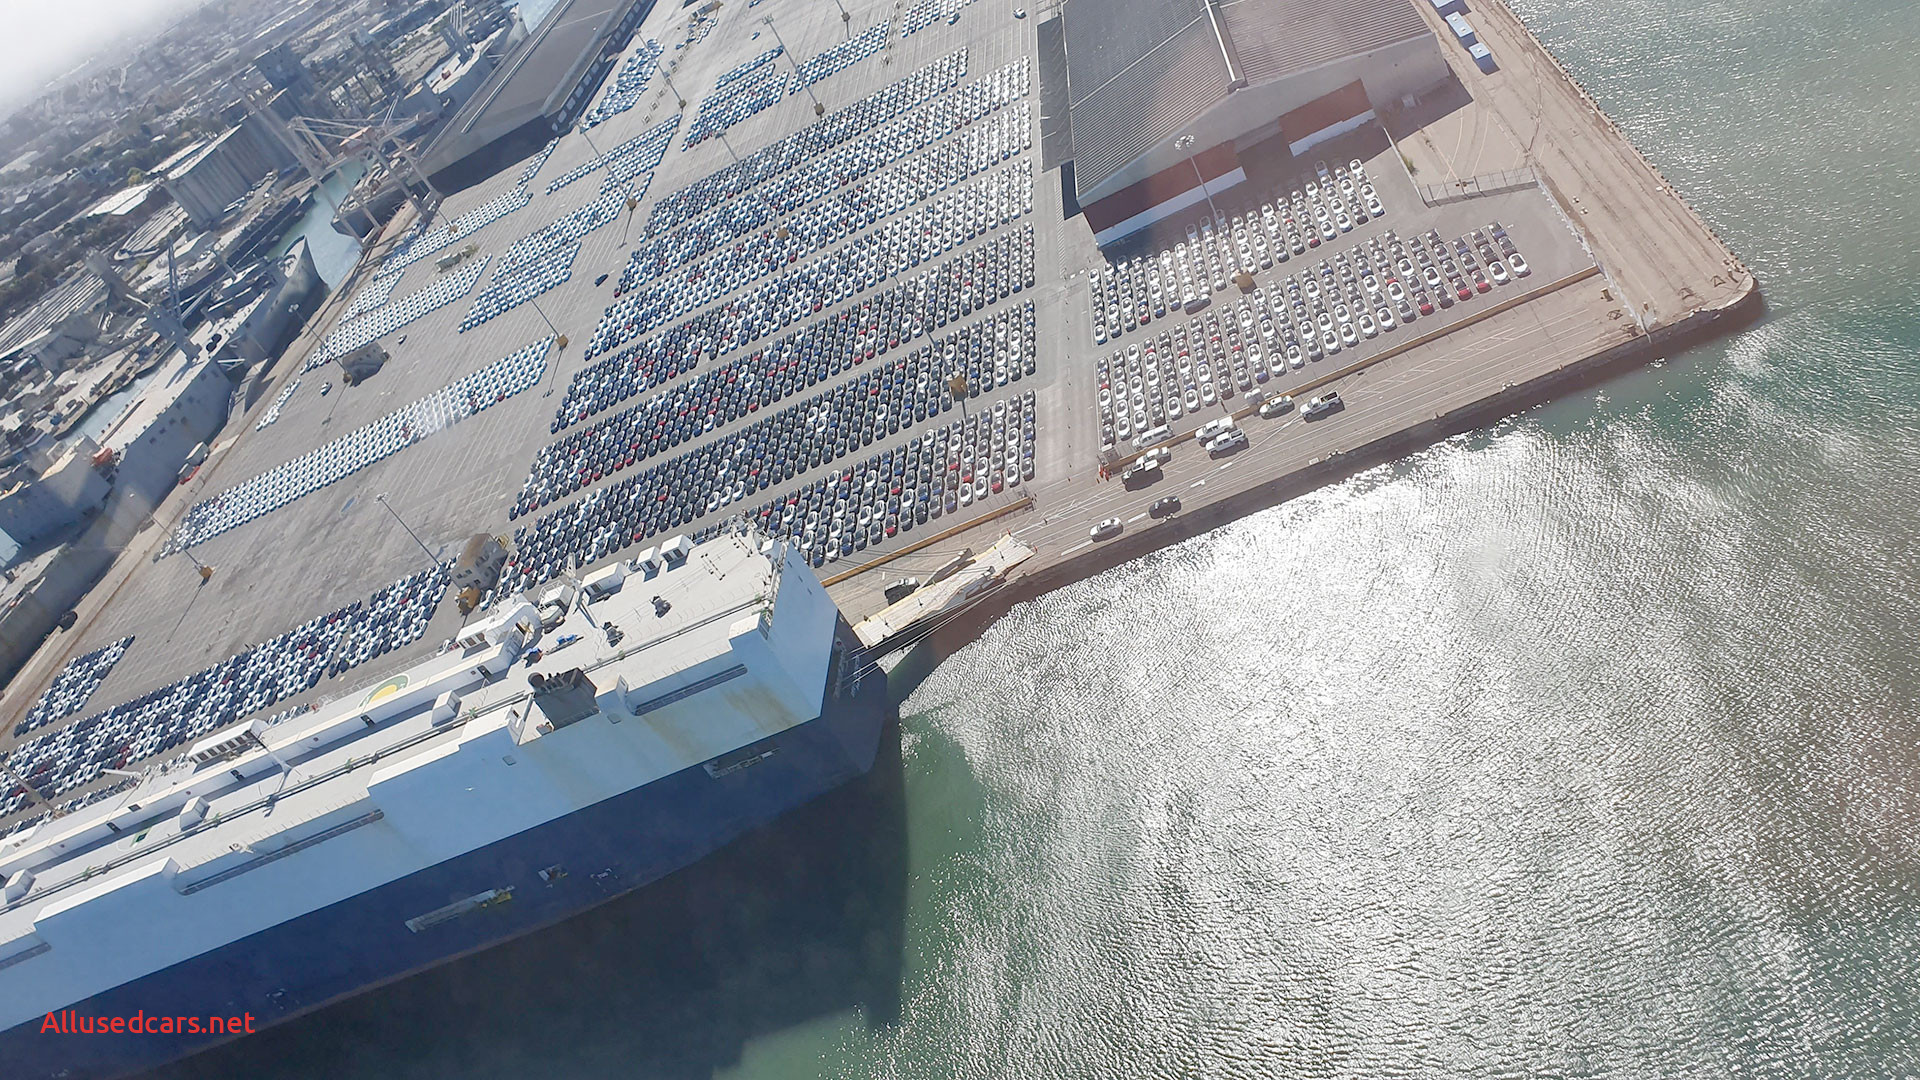 Why Tesla is Bad New Thousands Of Model 3 Pier 80 In San Francisco – the Last